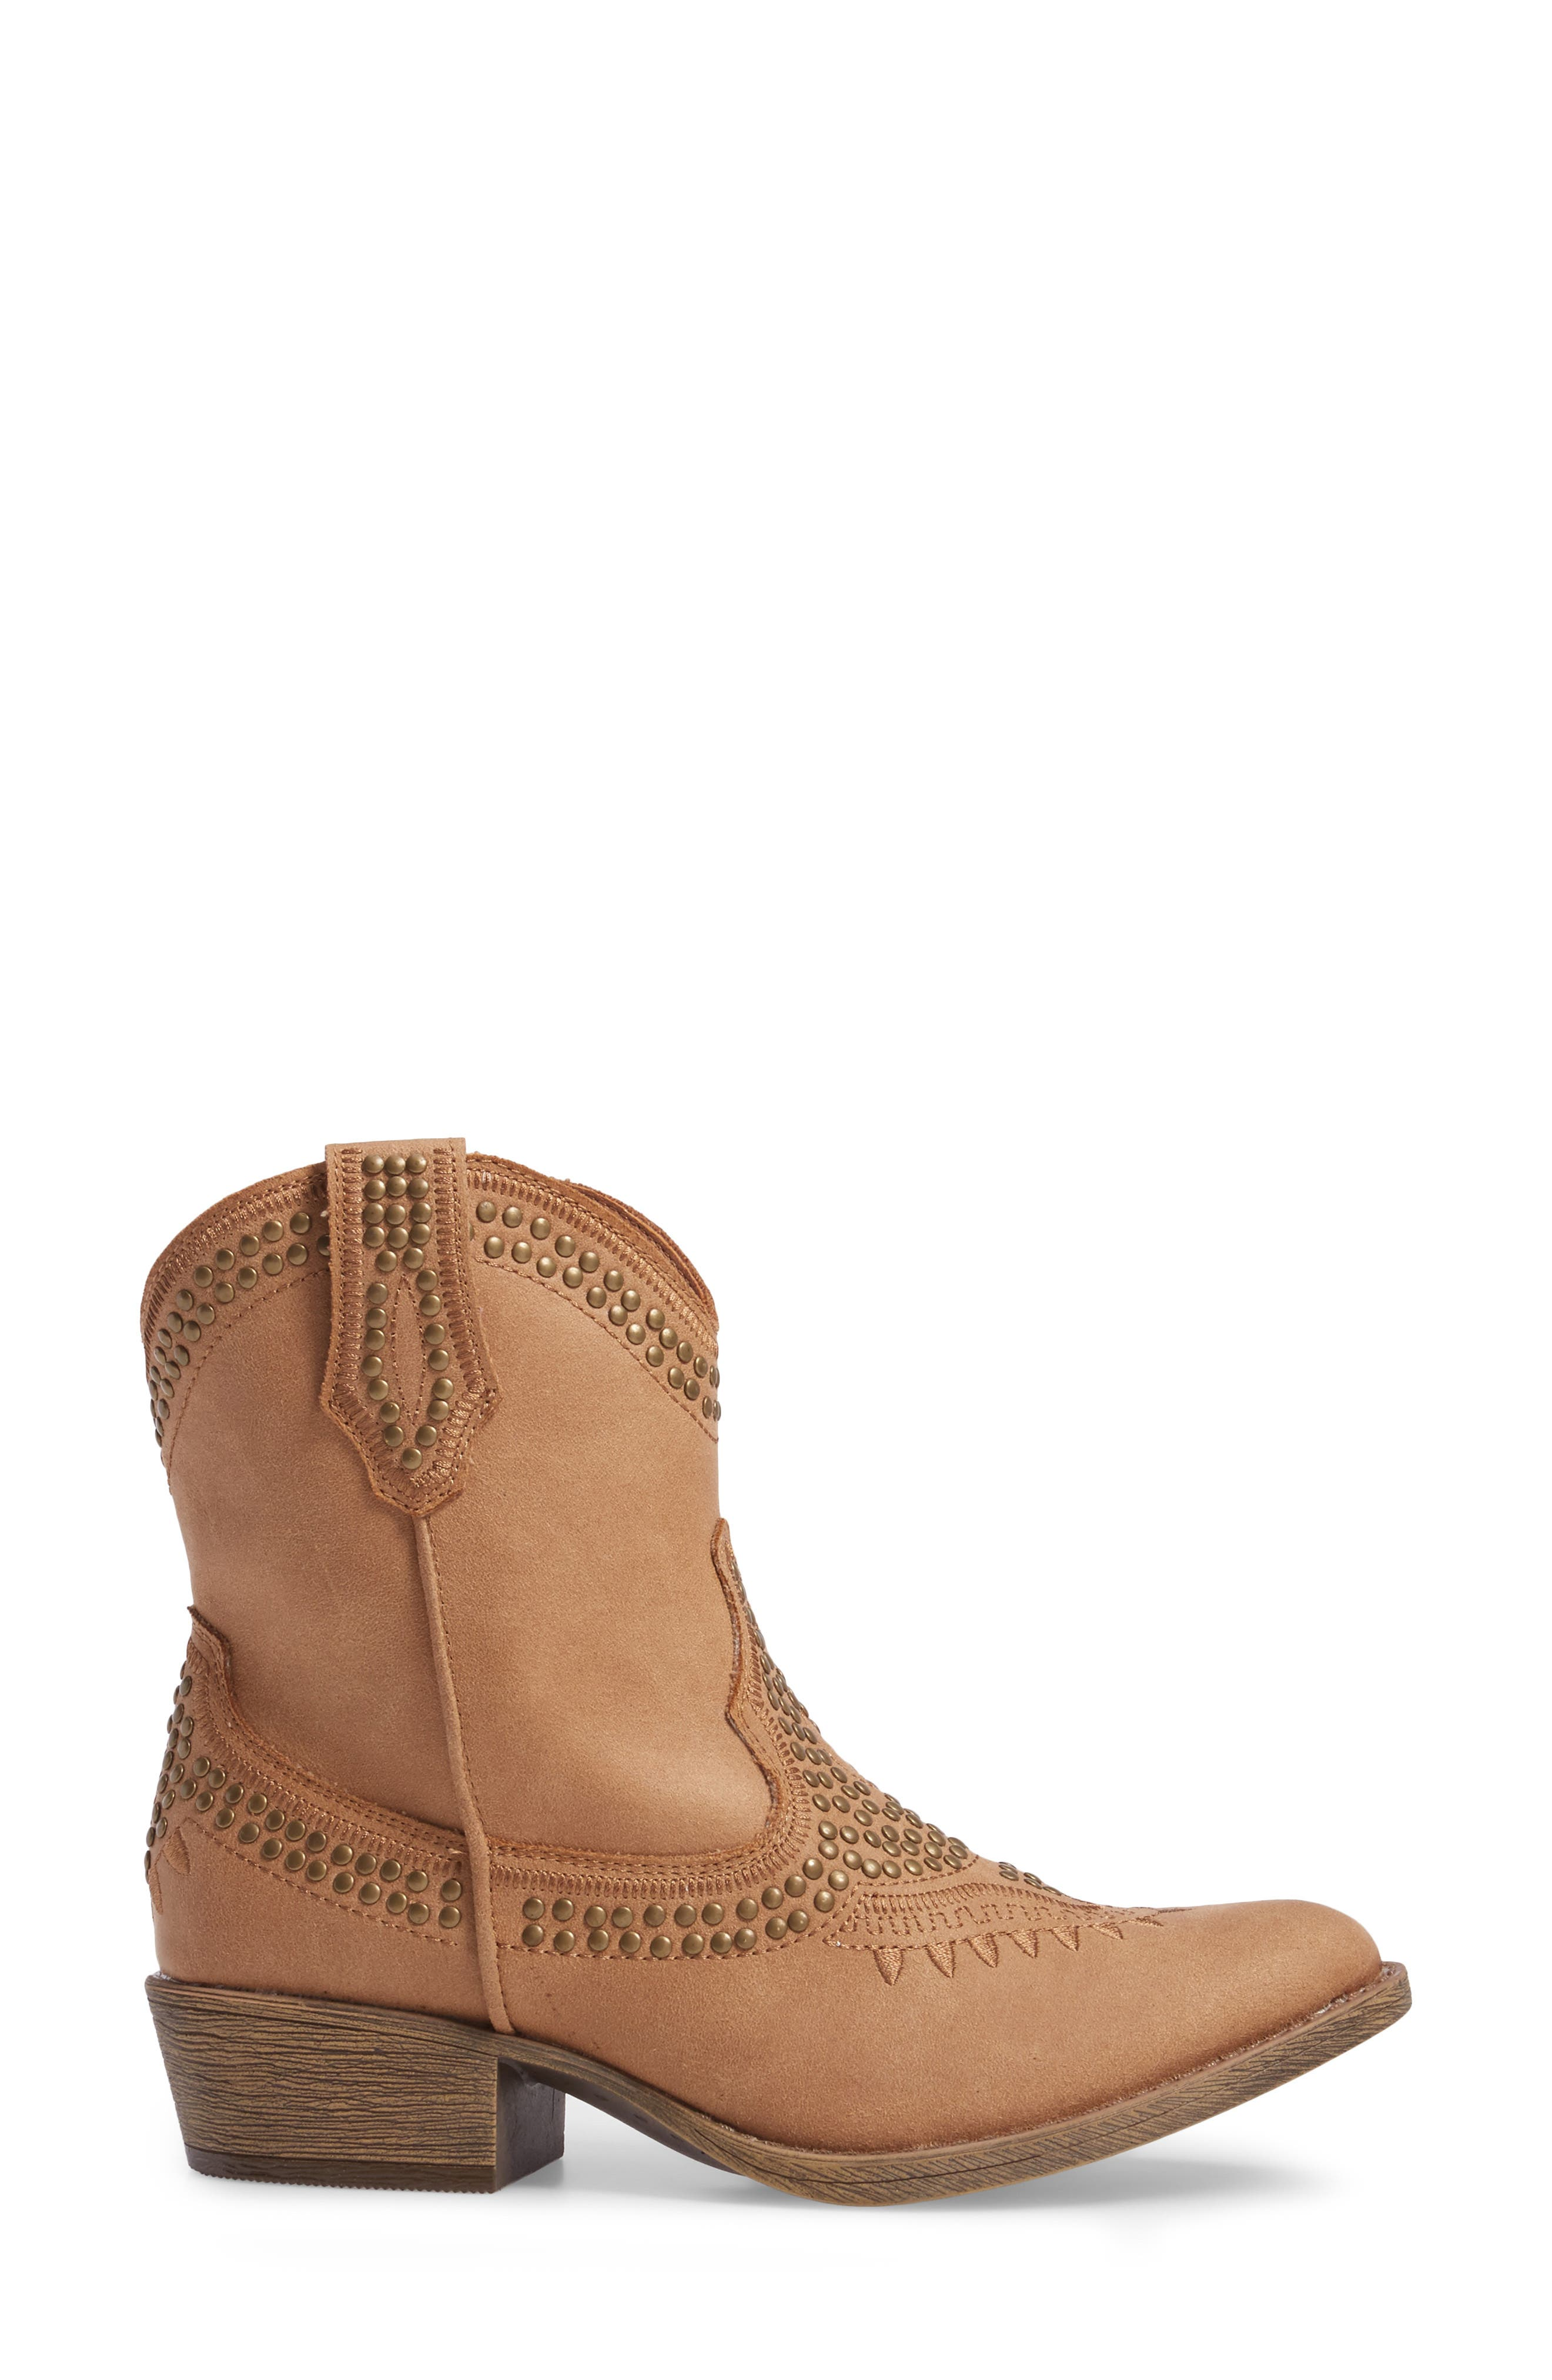 Amour Embellished Western Bootie,                             Alternate thumbnail 8, color,